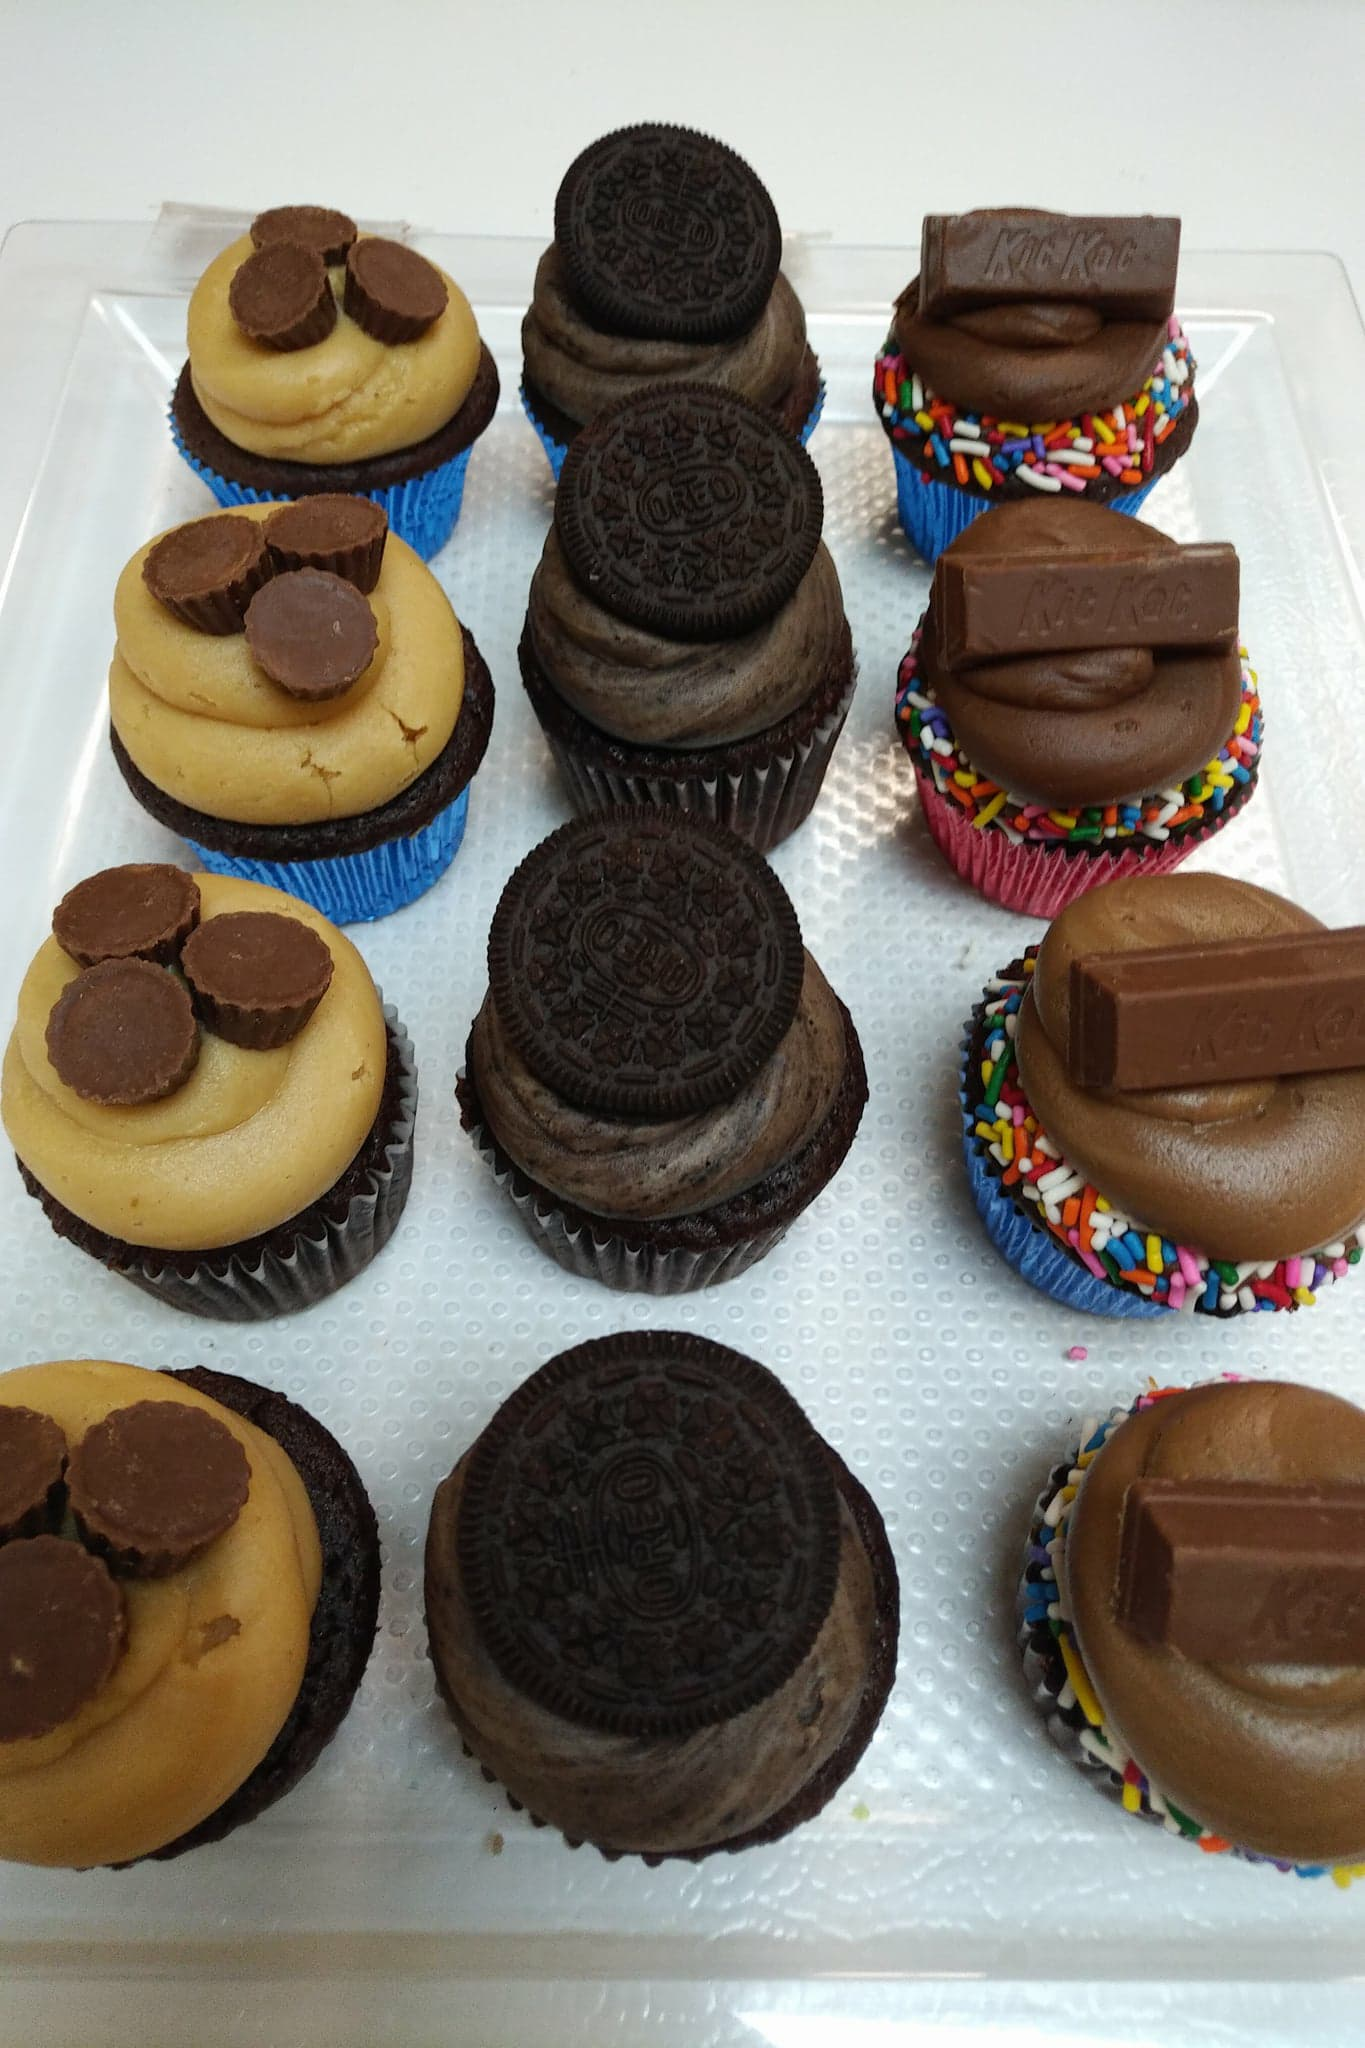 Assorted Specialty Cupcakes